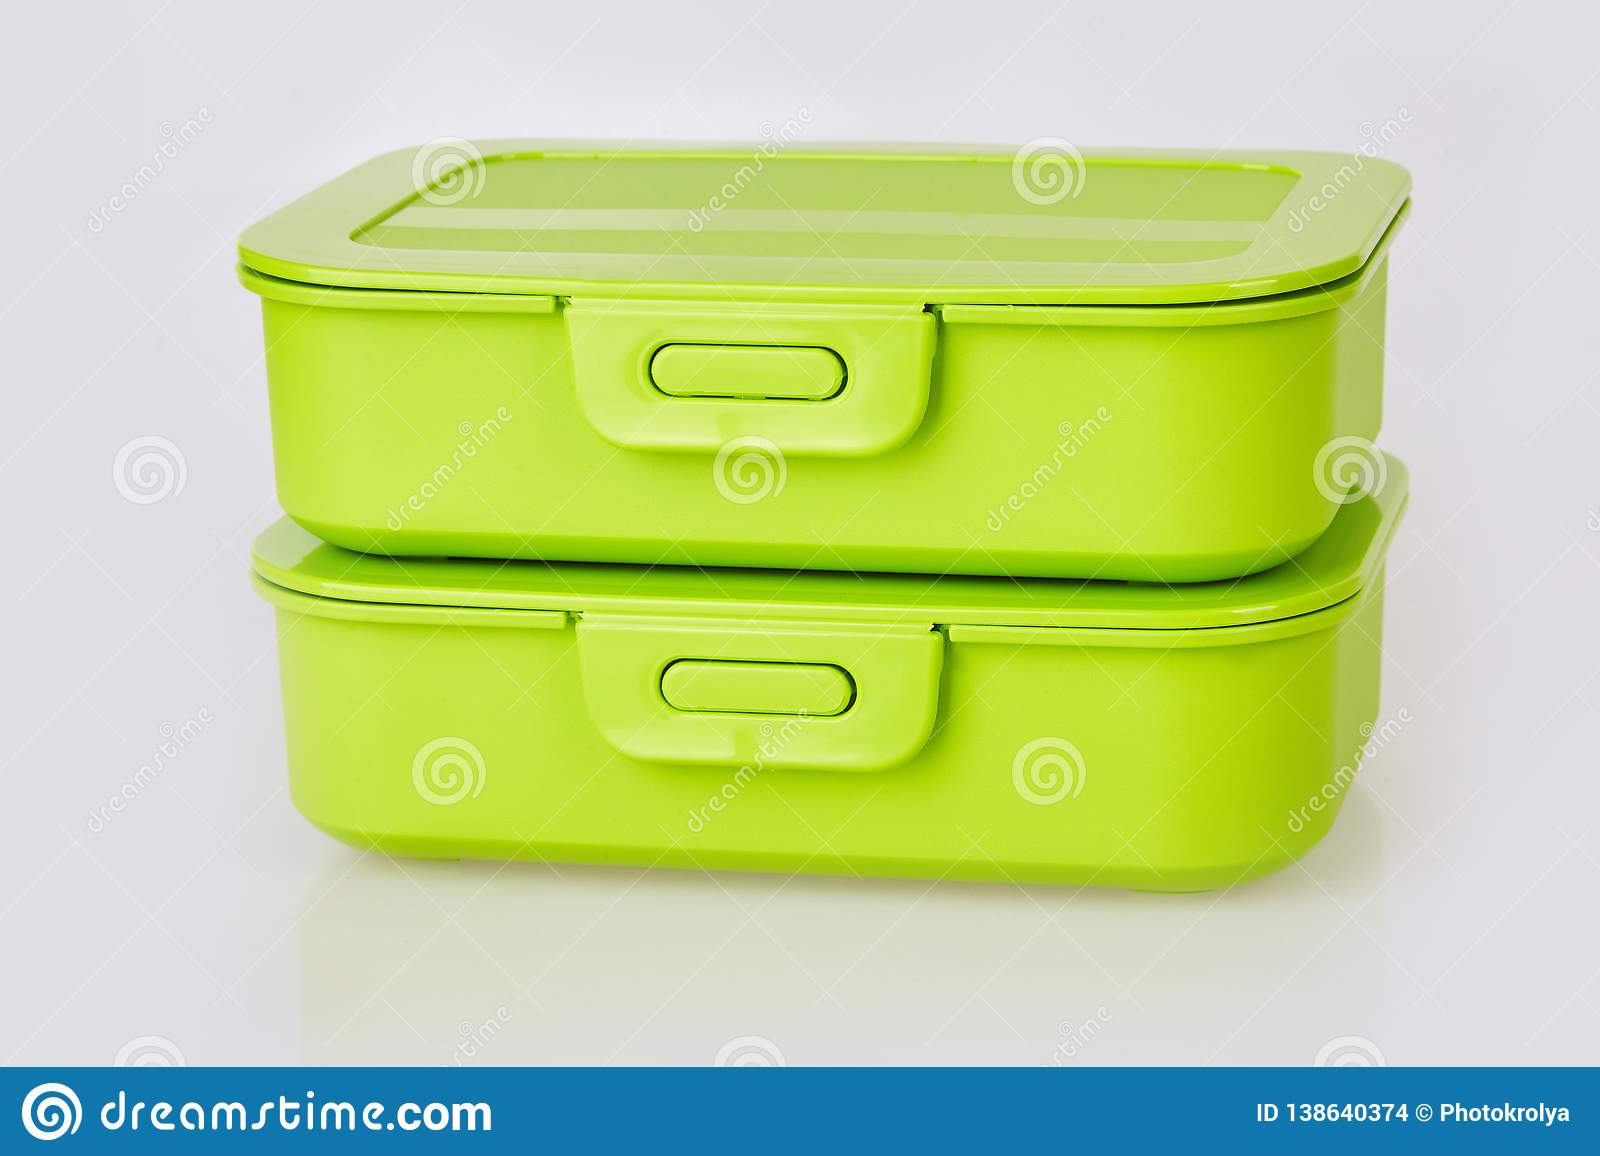 Set of two similar green plastic food storage containers